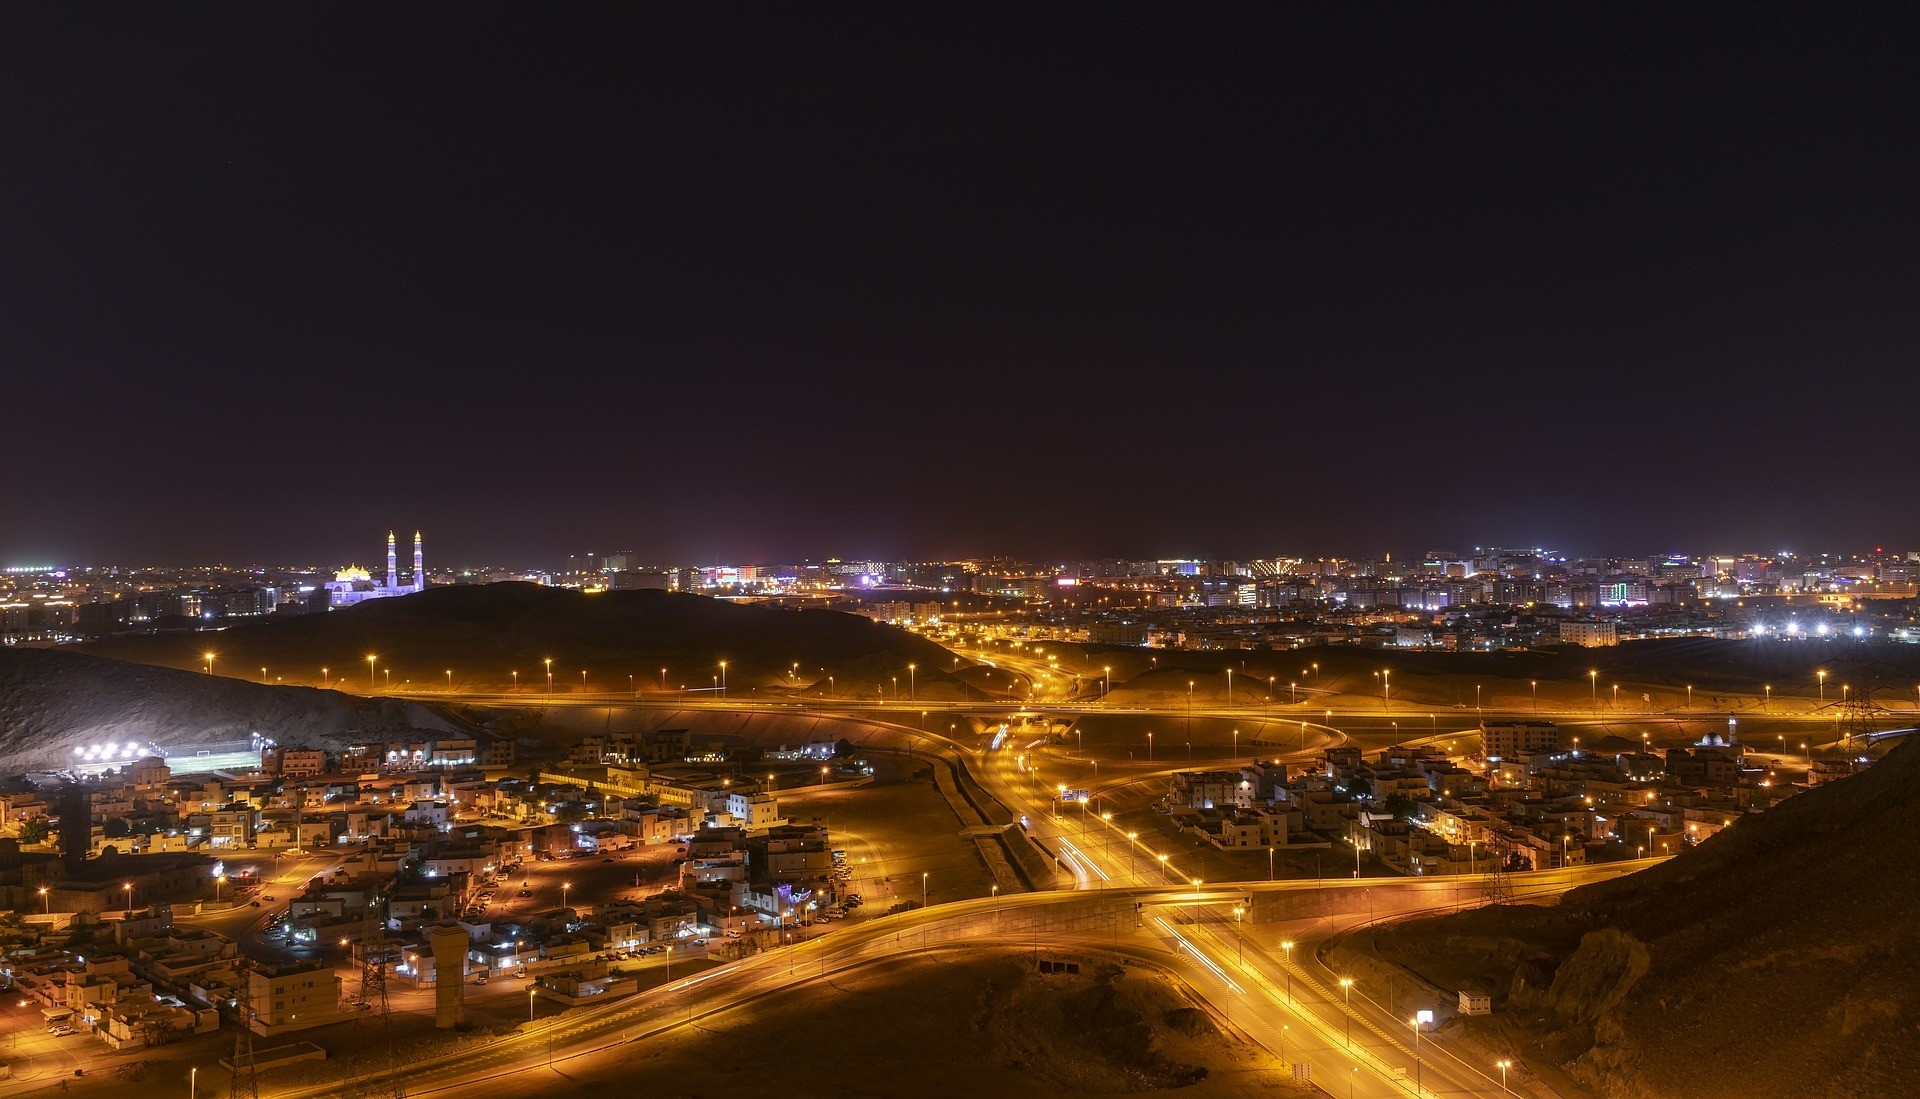 A landscape shot of roads outside a city in Oman at night